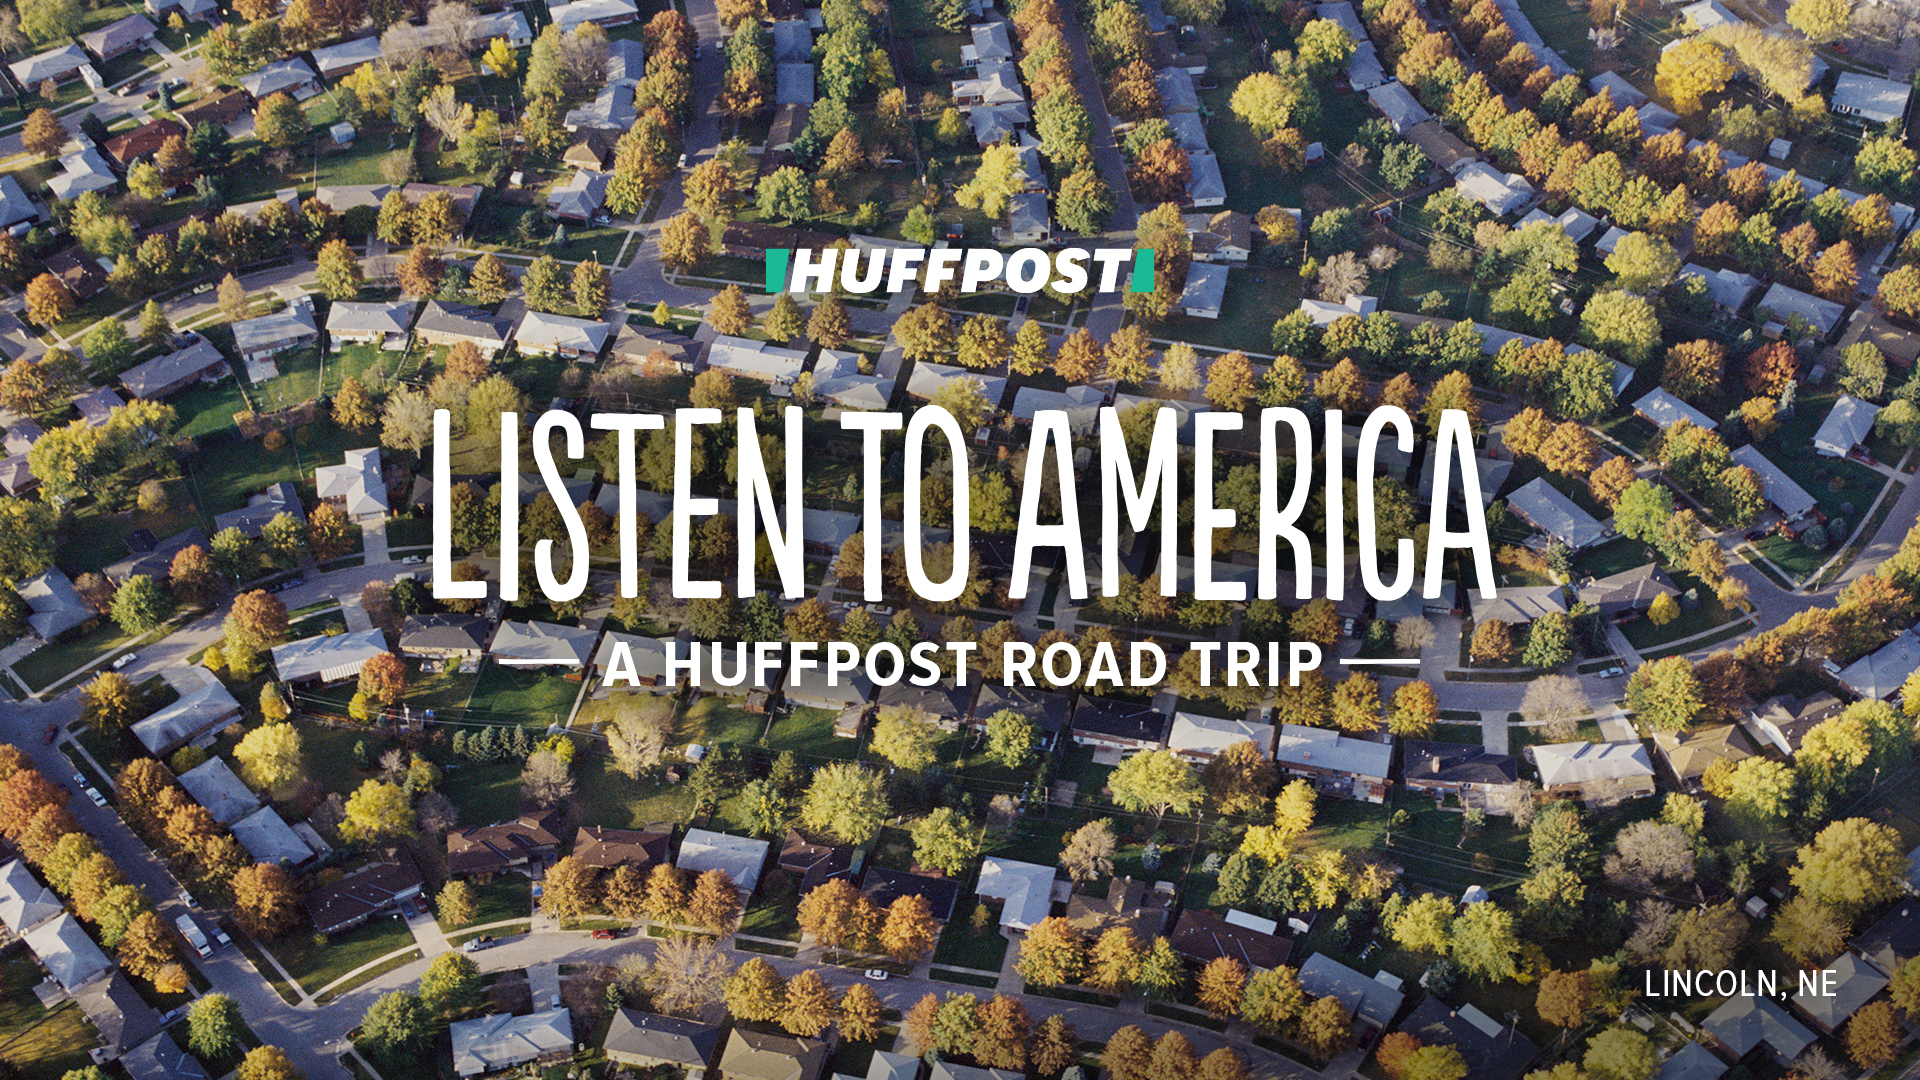 HuffPost Listen to America Bus Tour Graphic